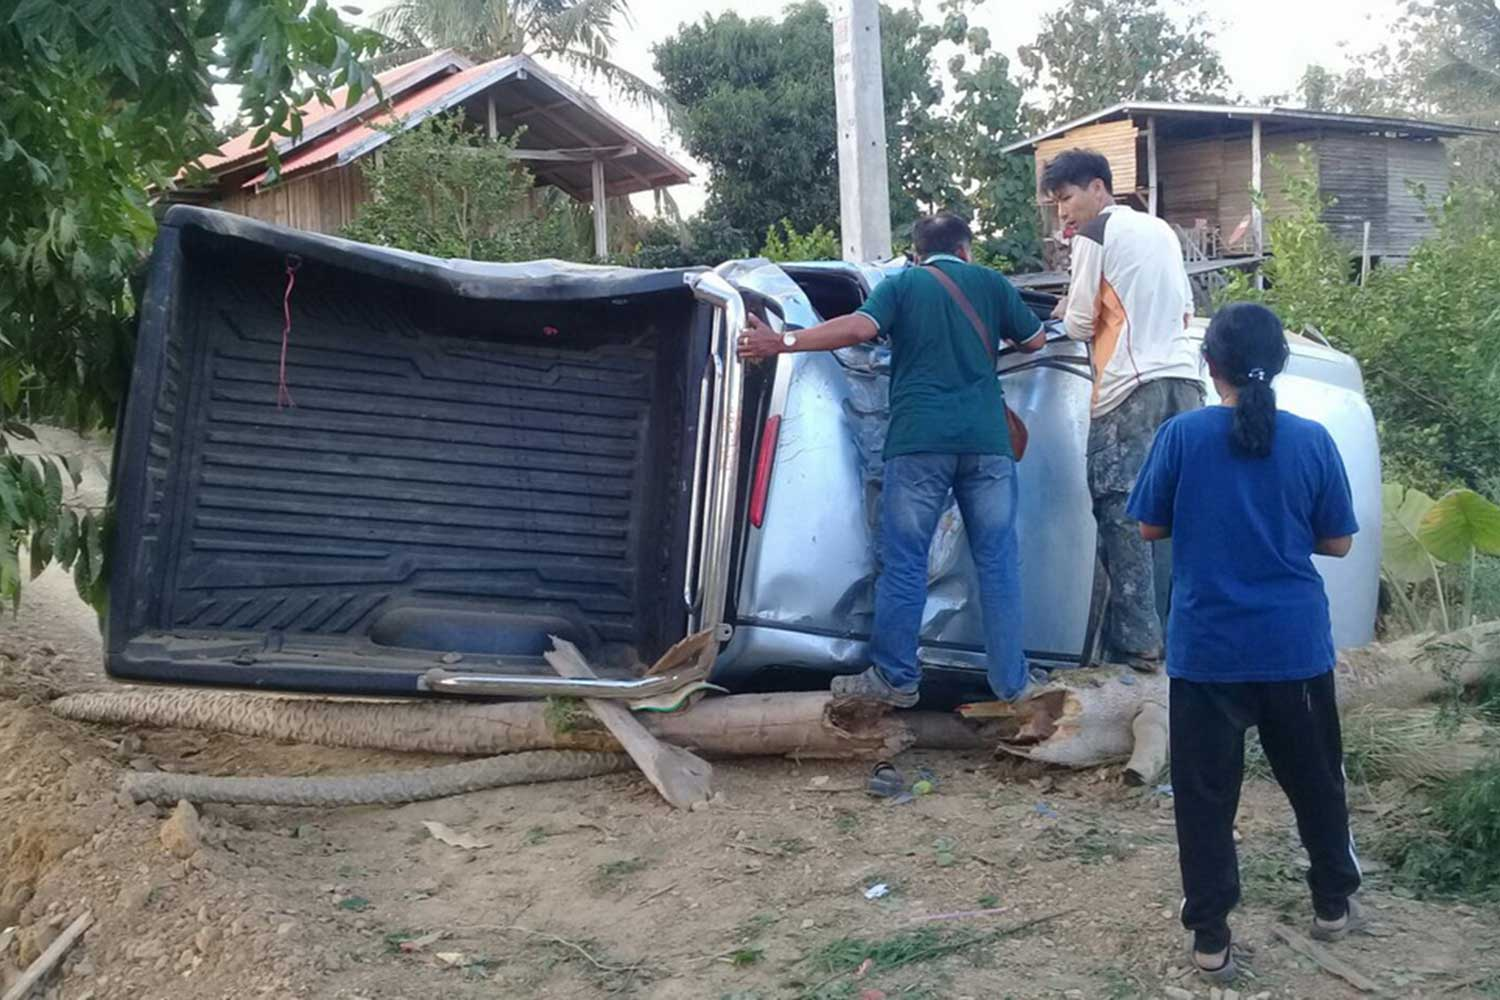 A pickup truck rams into a roadside electric pole in Si Satchanalai district, Sukhothai province, on Jan 1, killing a woman and injuring four others. (Photo by Phubes Faites)